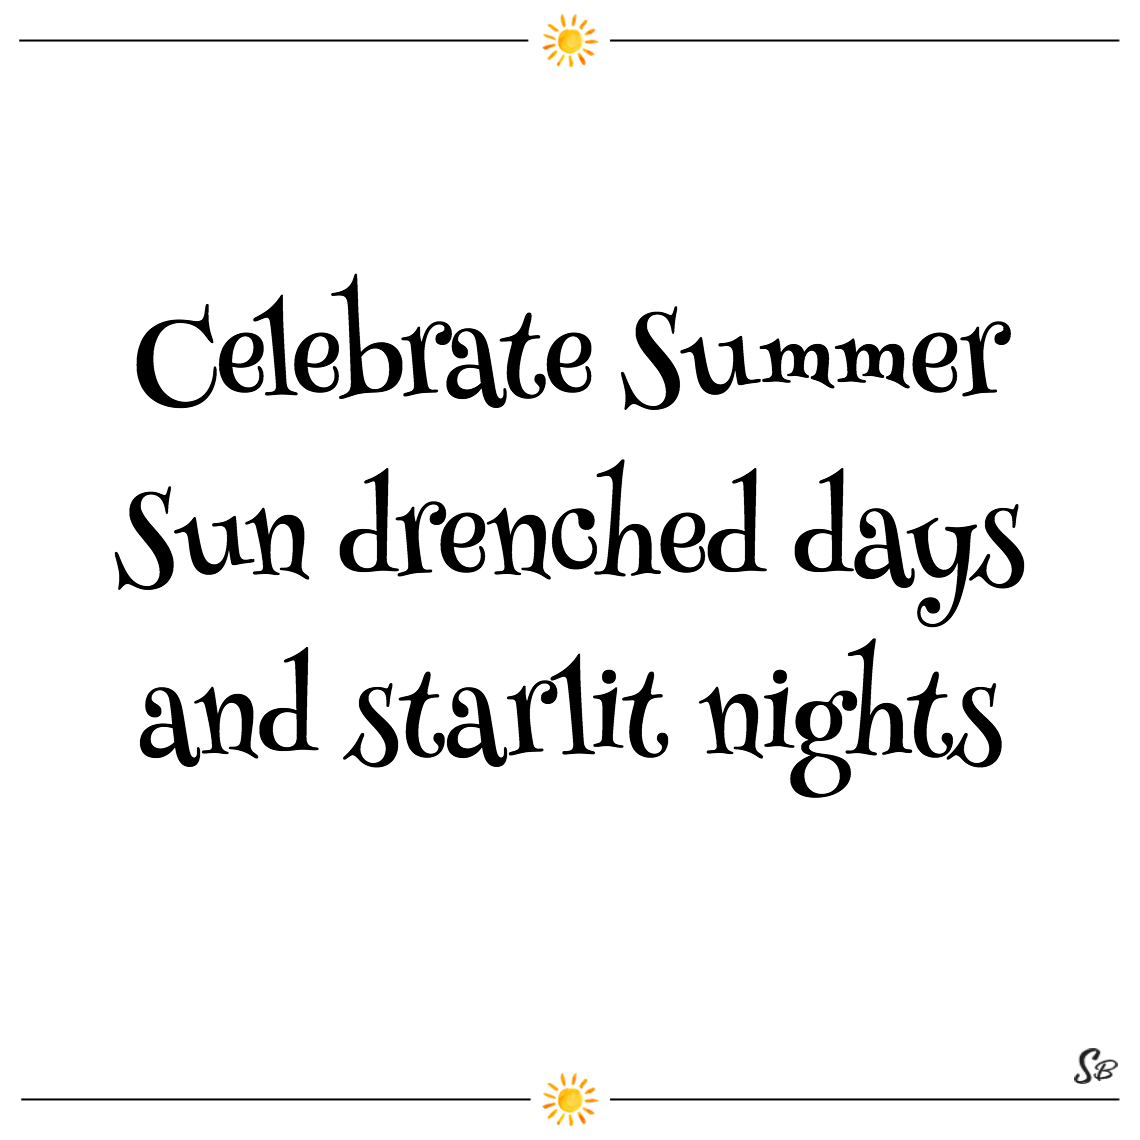 Celebrate summer sun drenched days and starlit nights